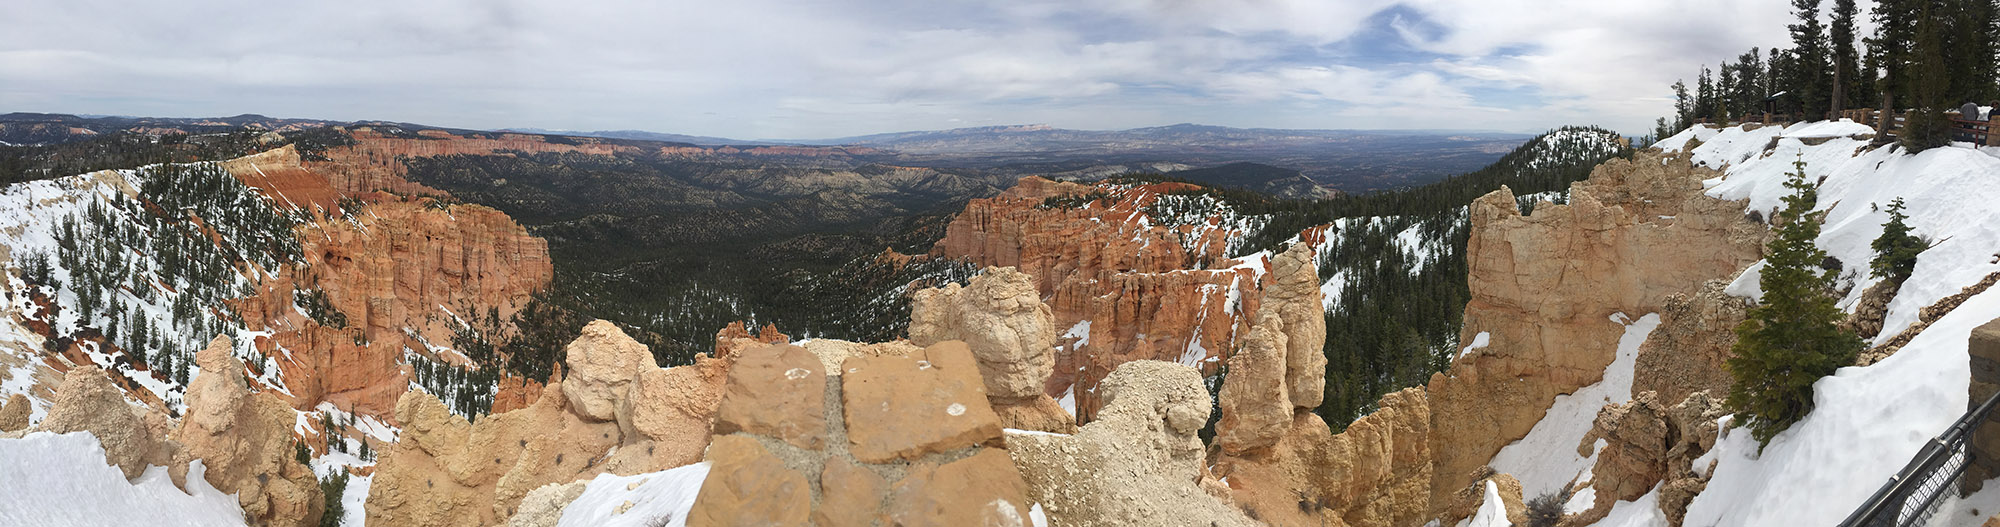 Bryce Canyon National Park - Click To See Larger